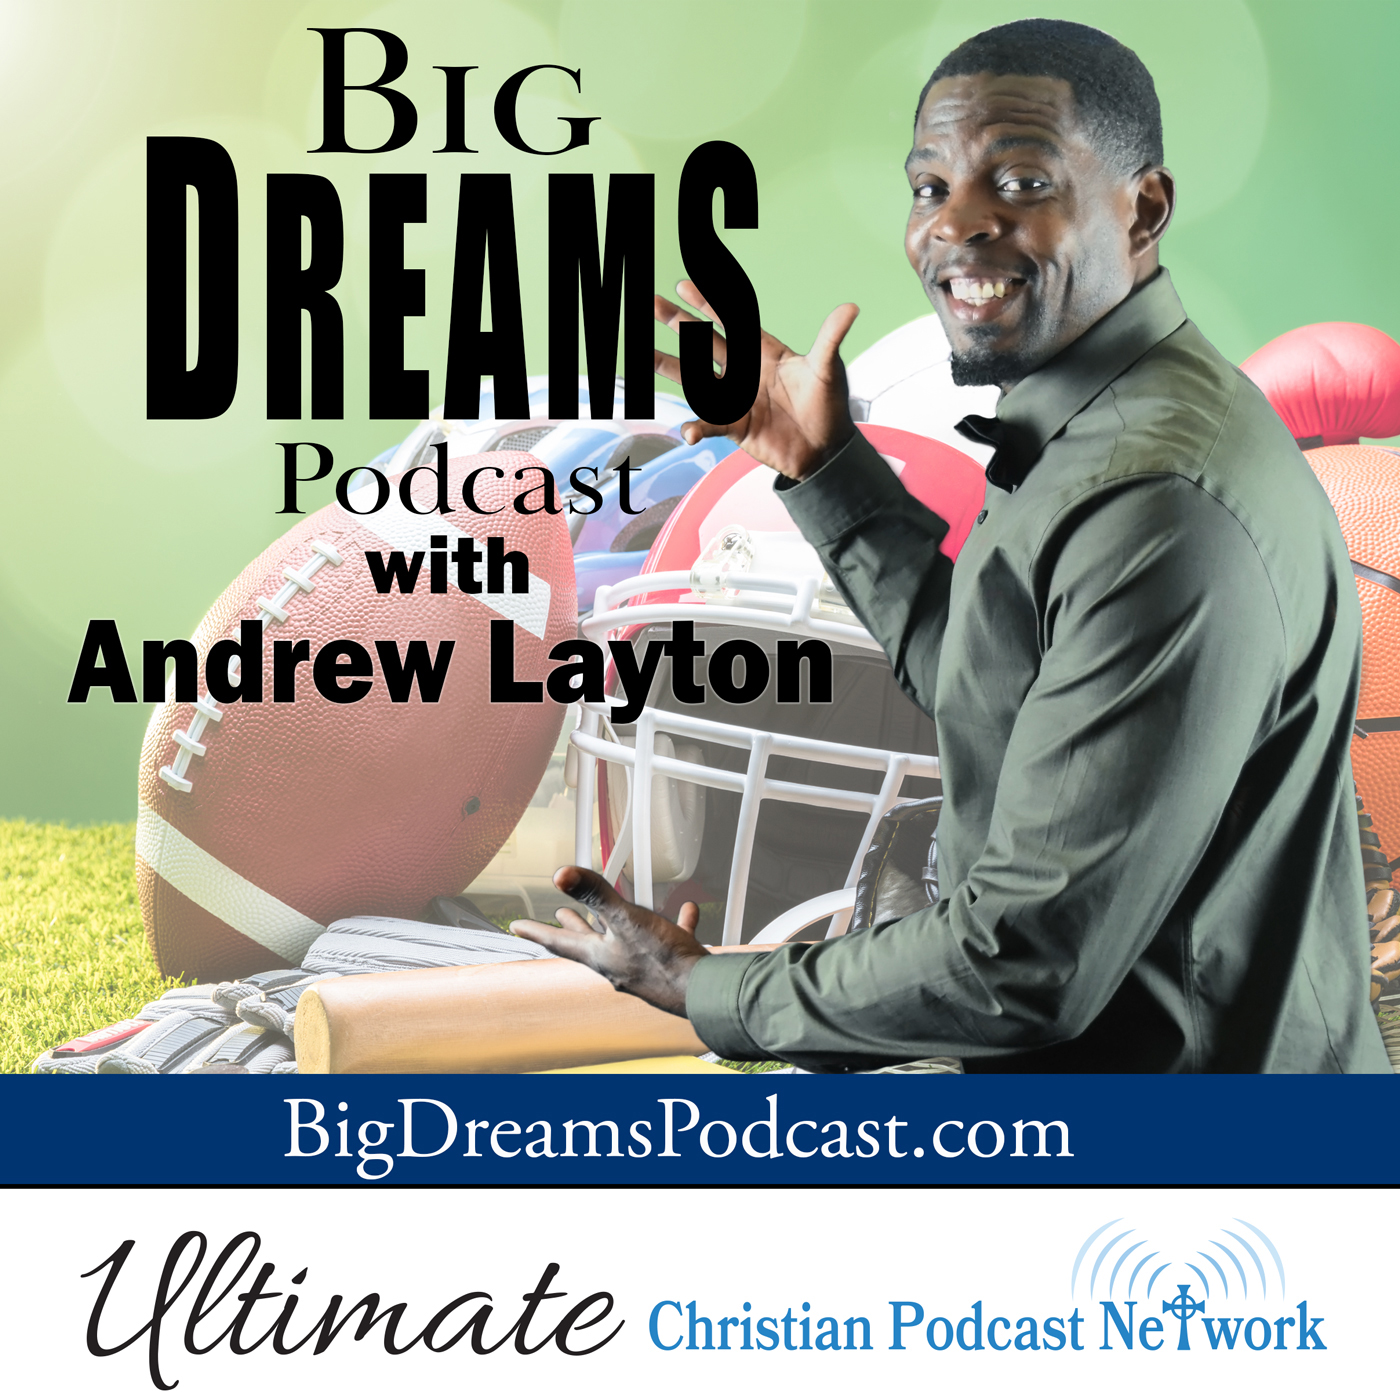 Big Dreams Podcast